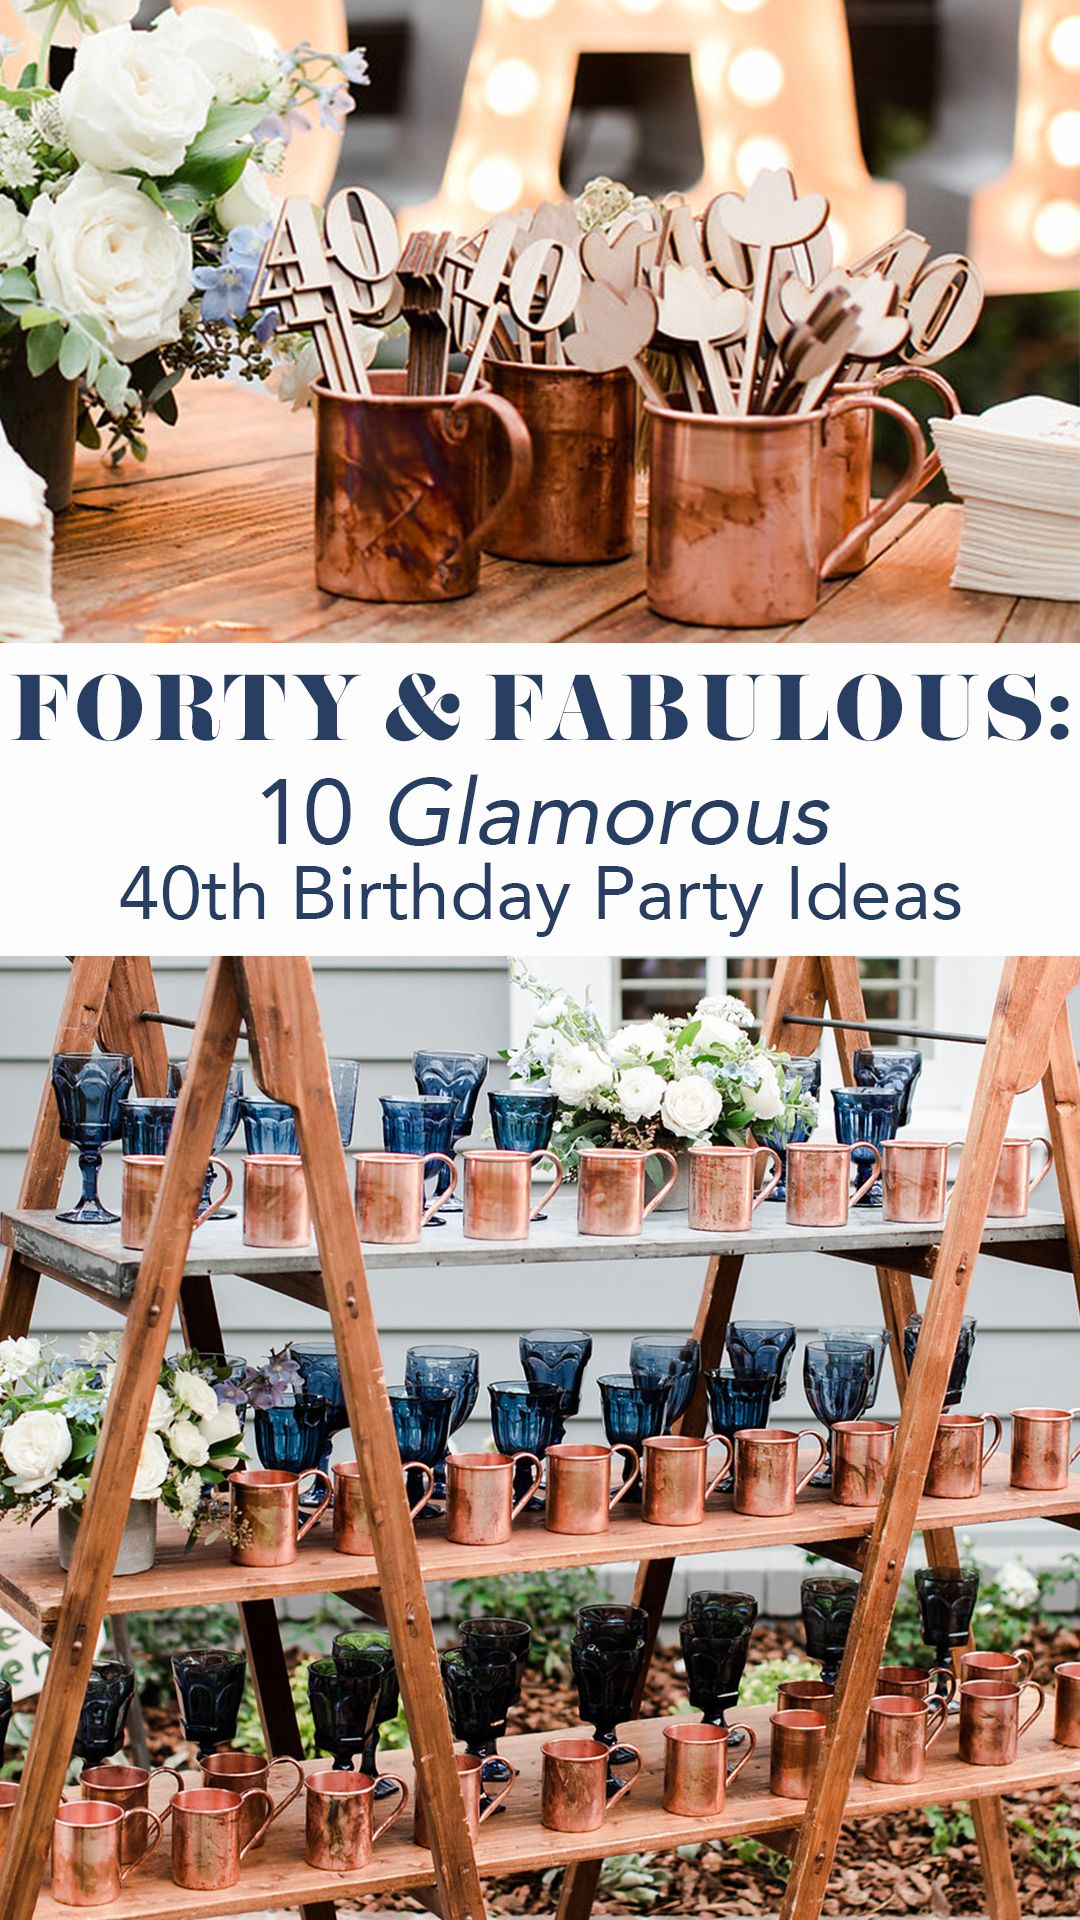 Forty & Fabulous